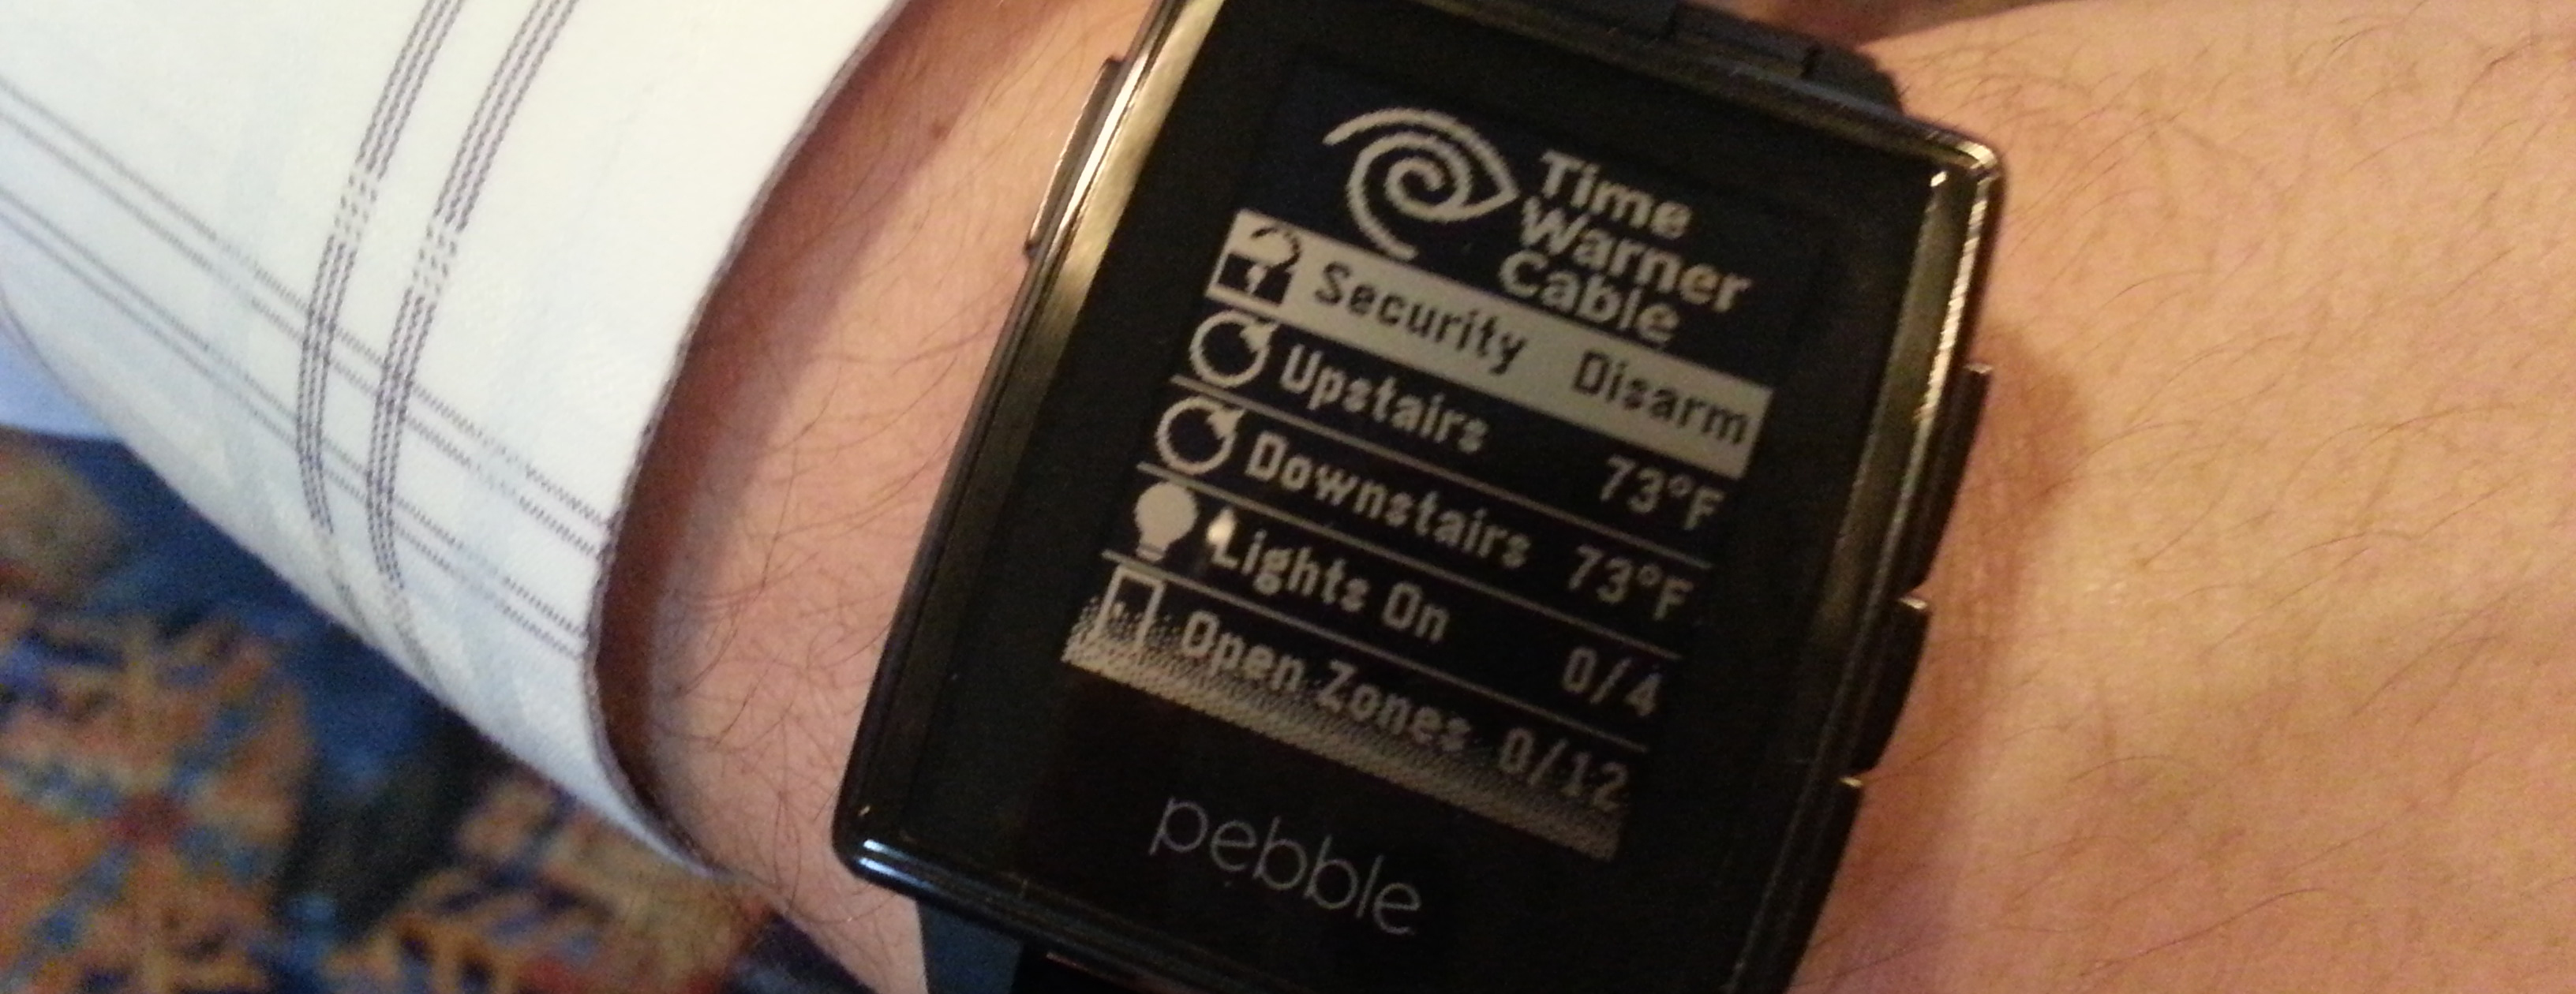 pebble interface crop